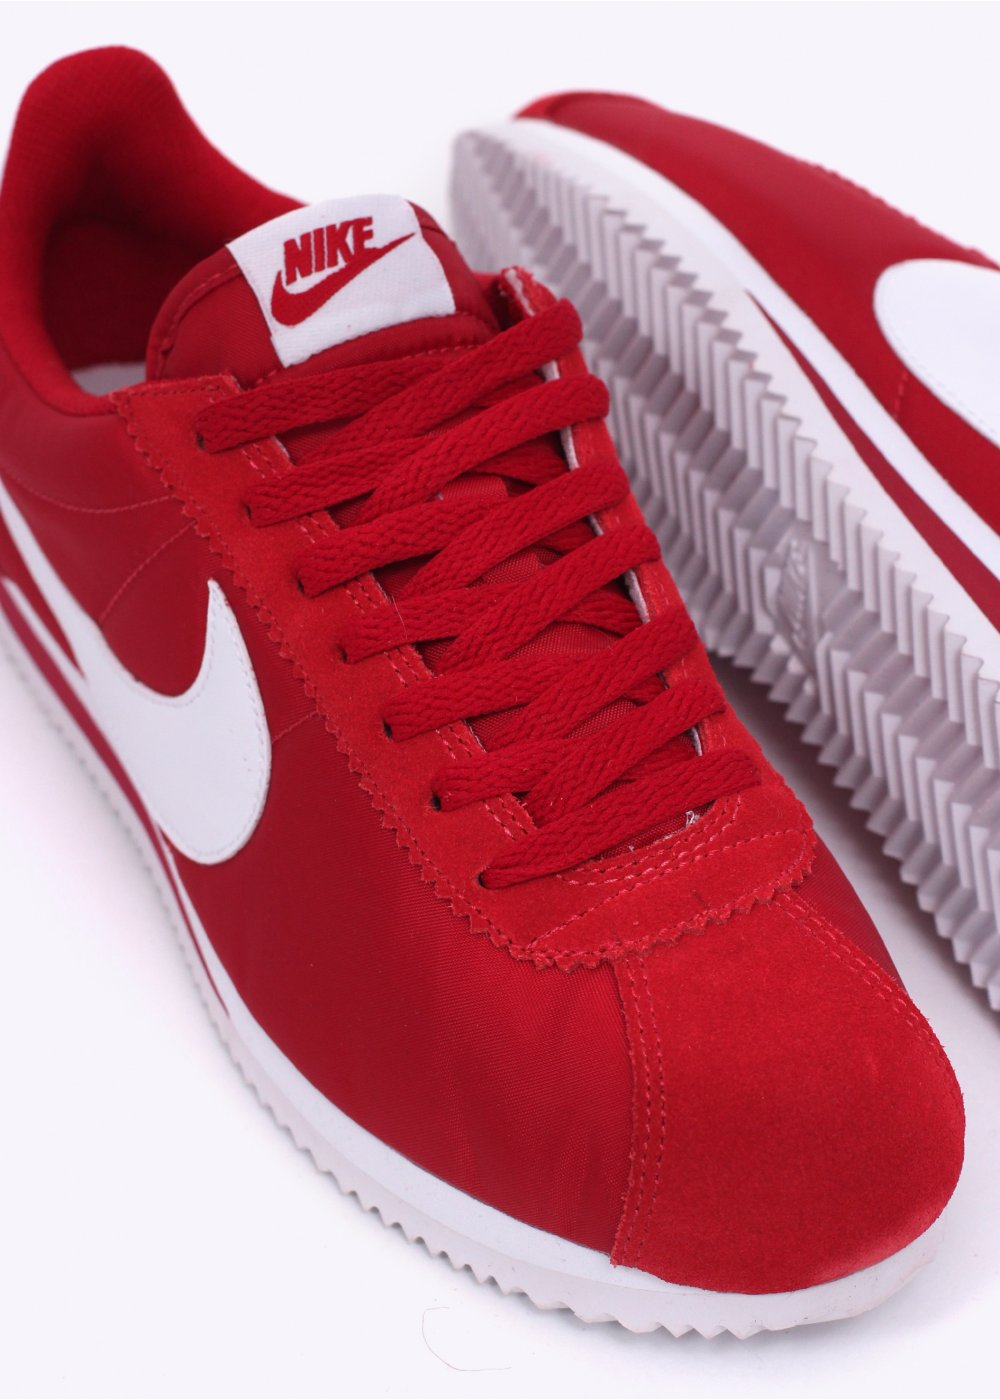 best website 0b665 31846 Nike Footwear Classic Cortez Nylon Trainers - Gym Red / White